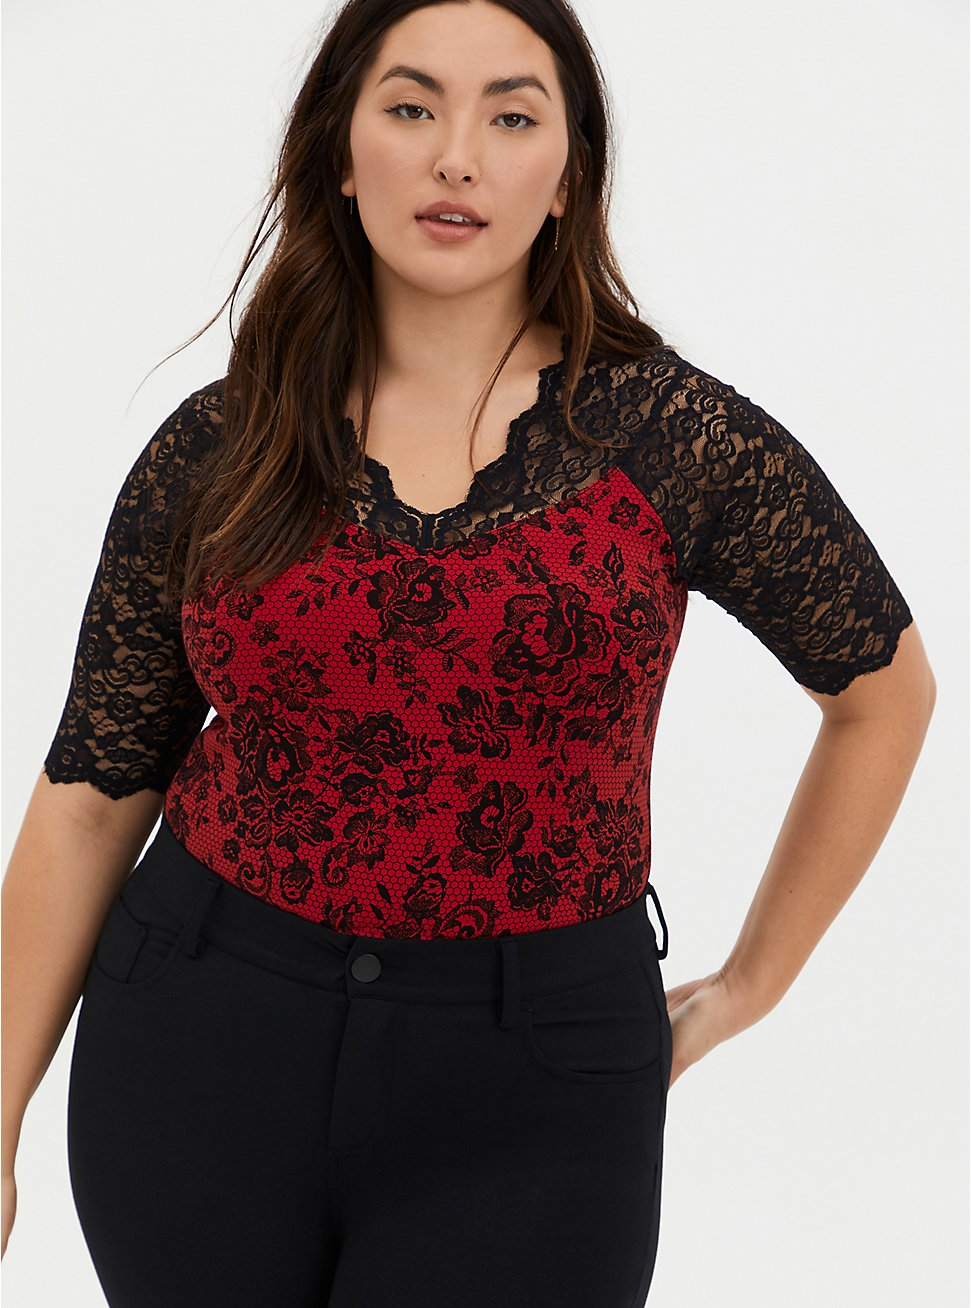 Black Lace & Red Foxy Bodysuit, DEEP BLACK, hi-res